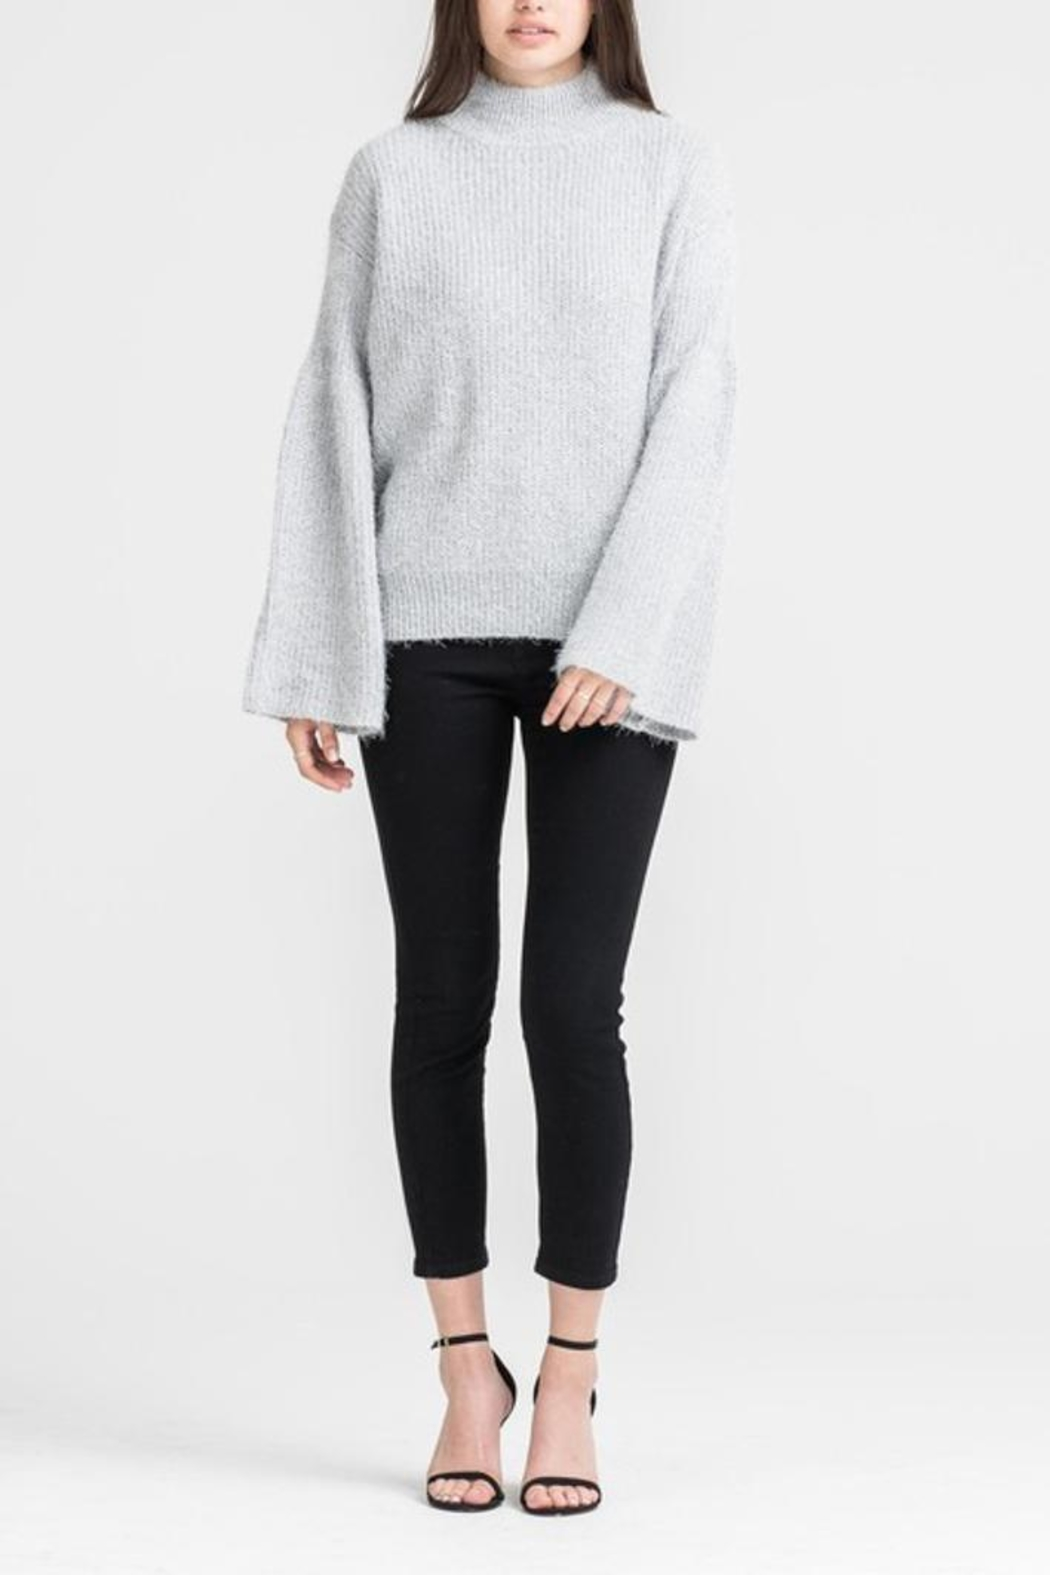 People Outfitter Hannah Sweater from New York — Shoptiques 8534a8fb7